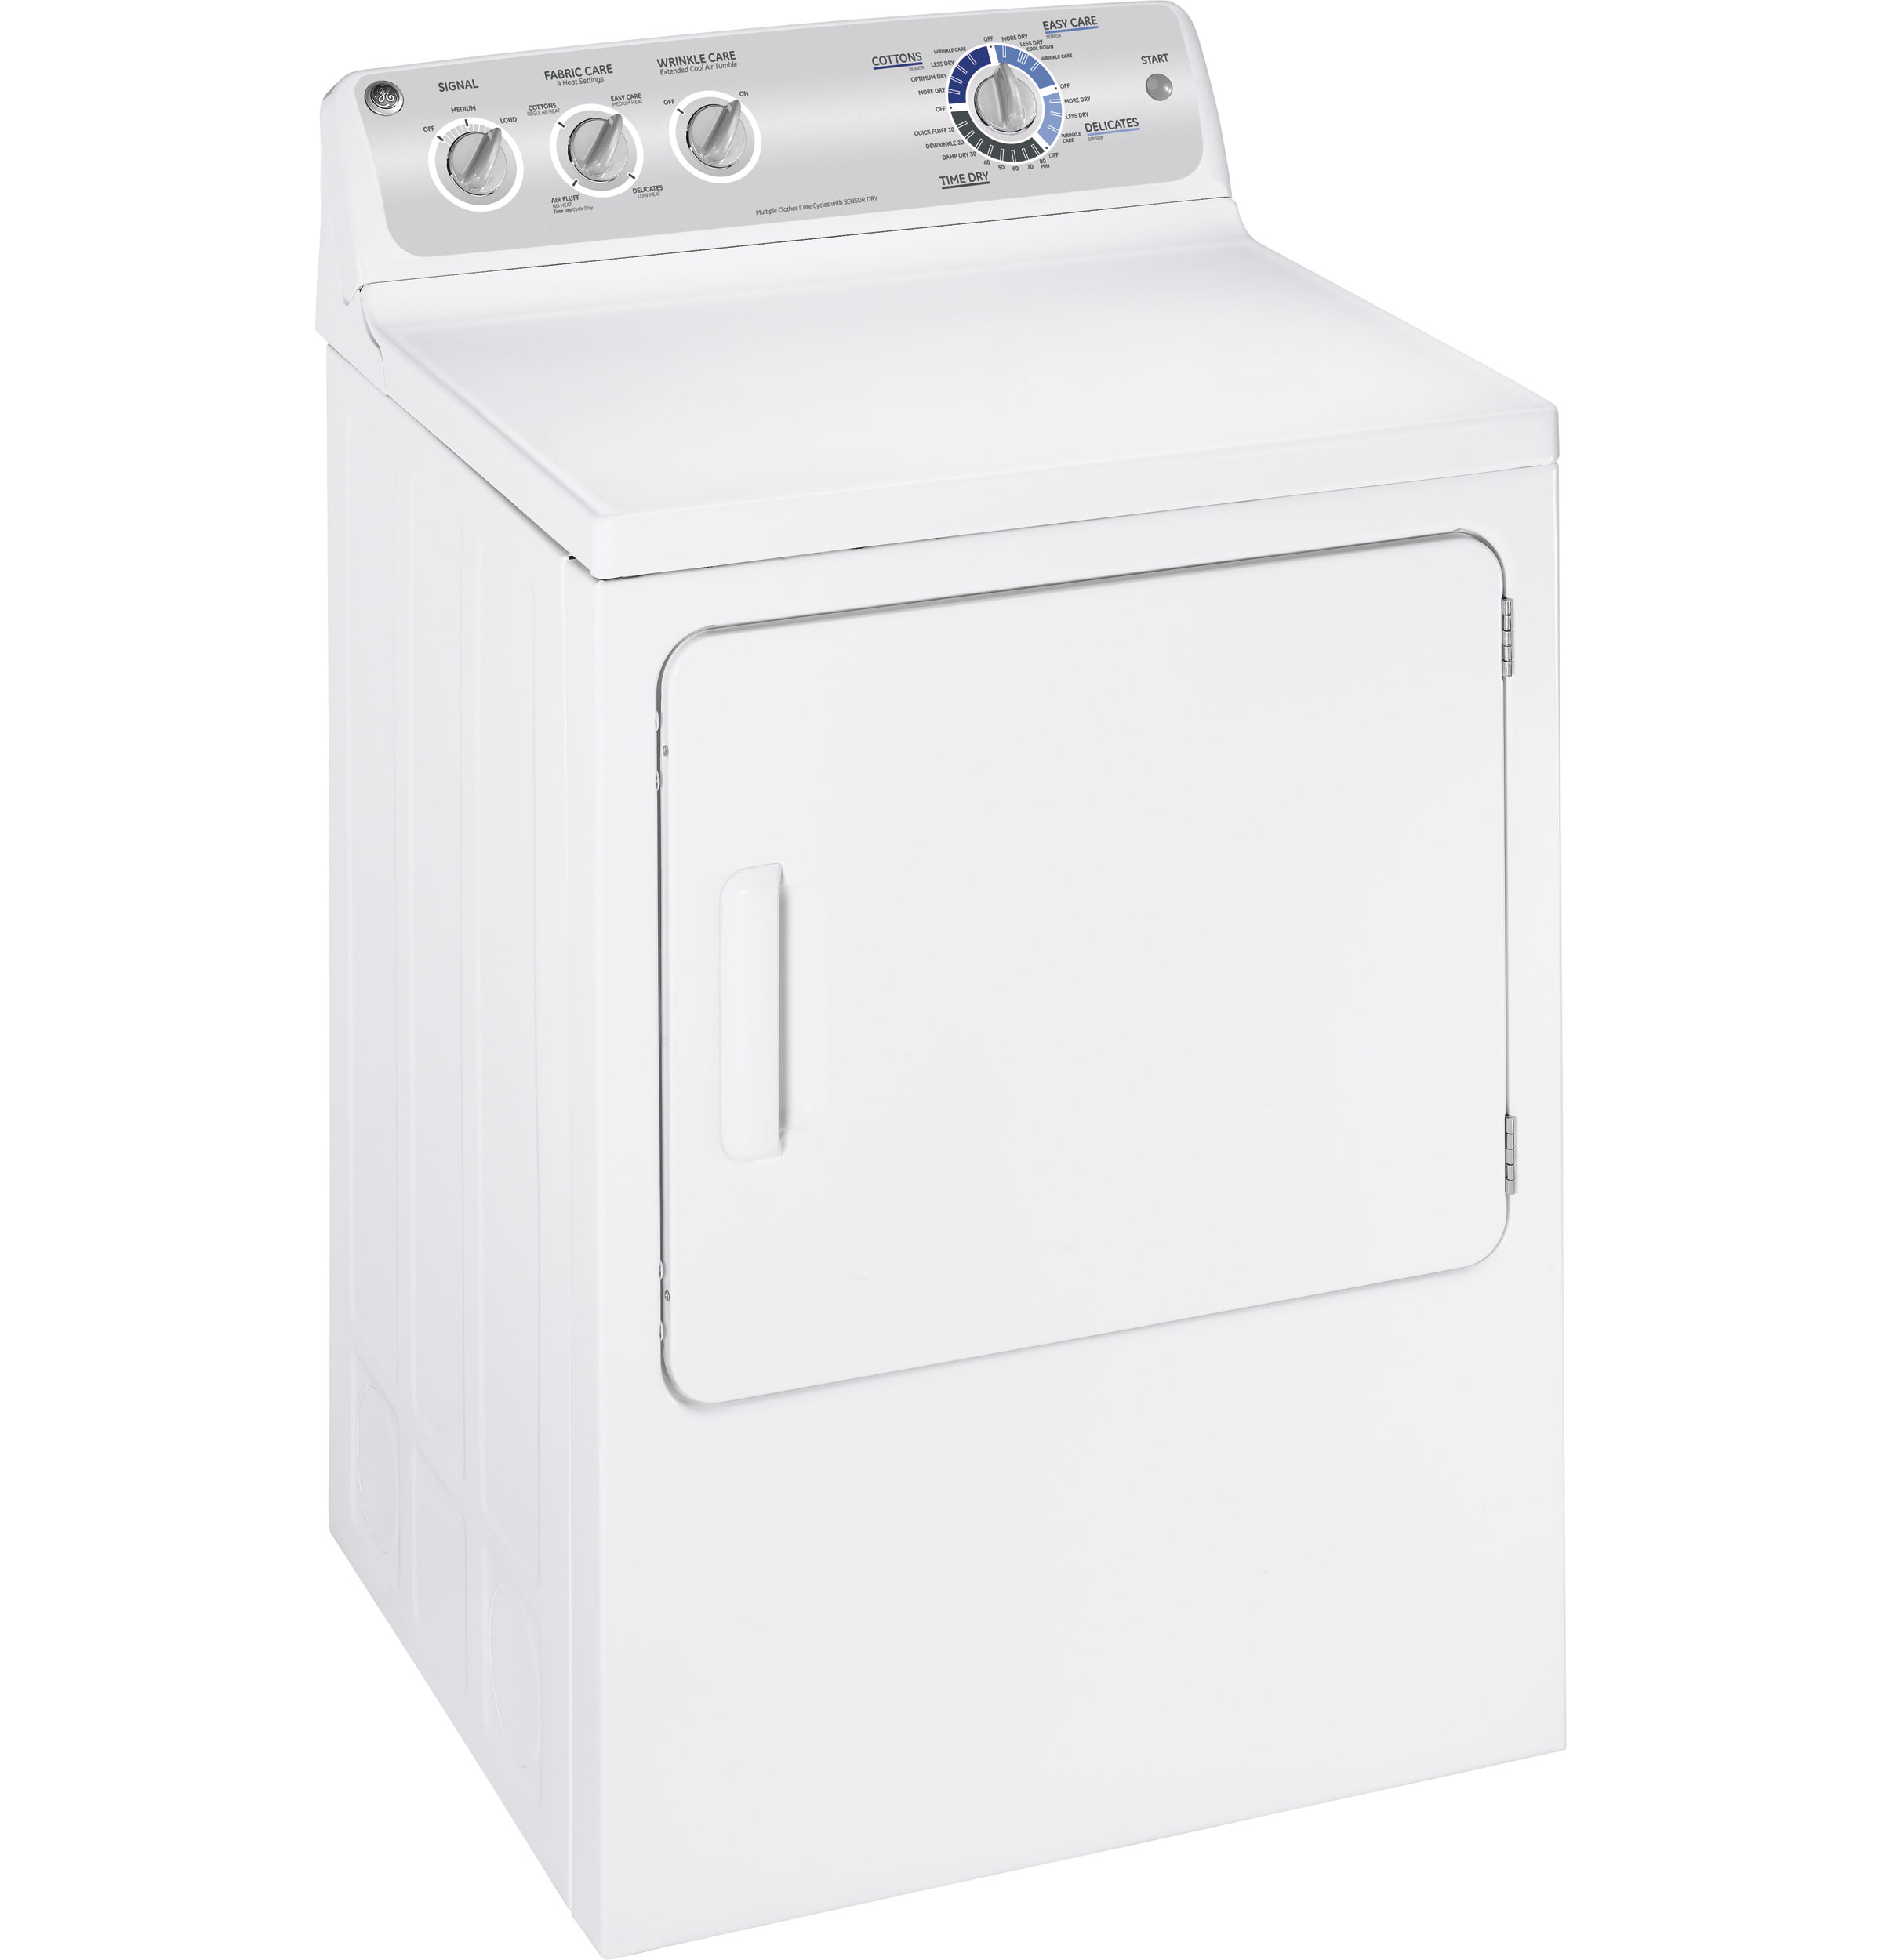 Ge 174 7 0 Cu Ft Stainless Steel Capacity Electric Dryer